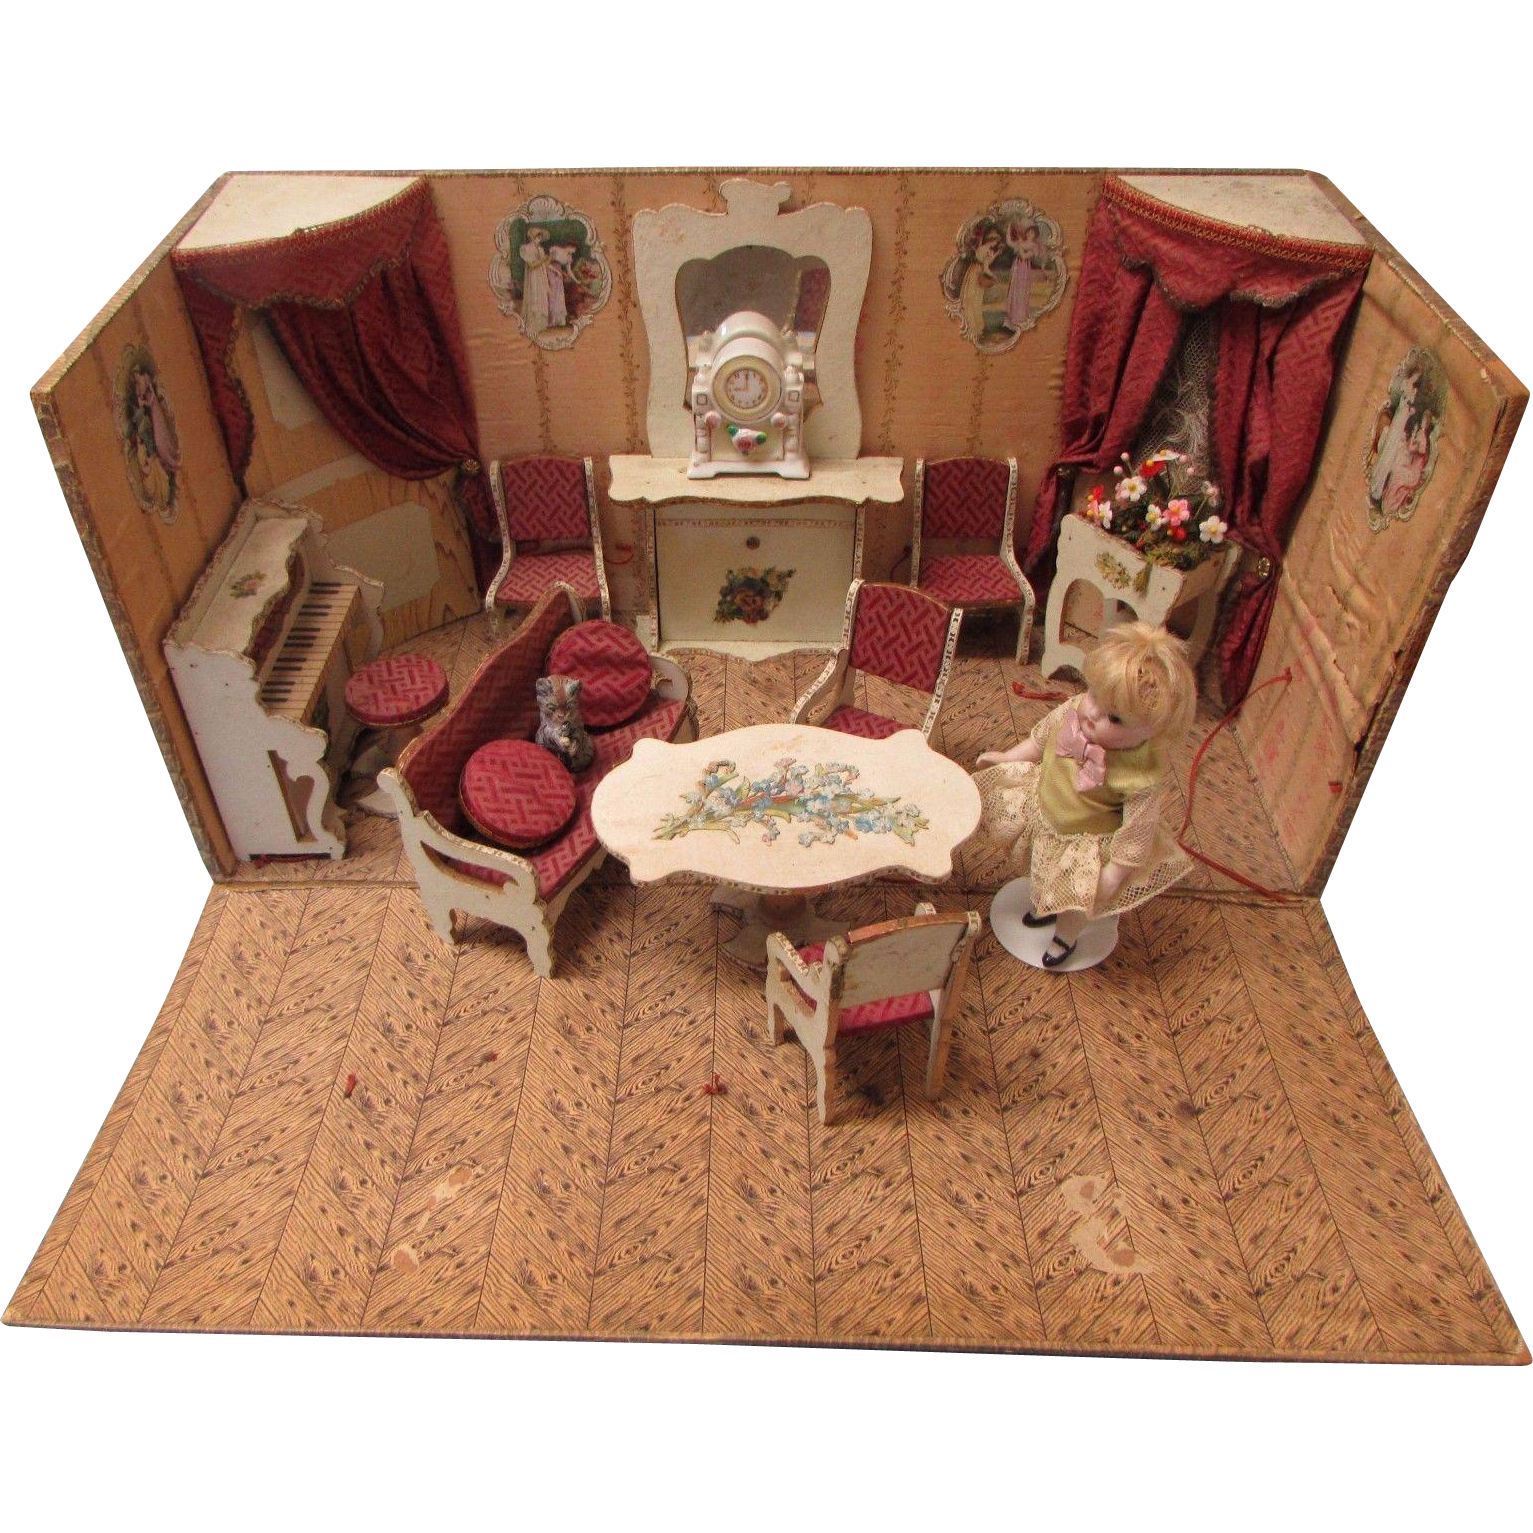 Antique French Miniature Dollhouse Burgundy Parlor Furnishings Room Box